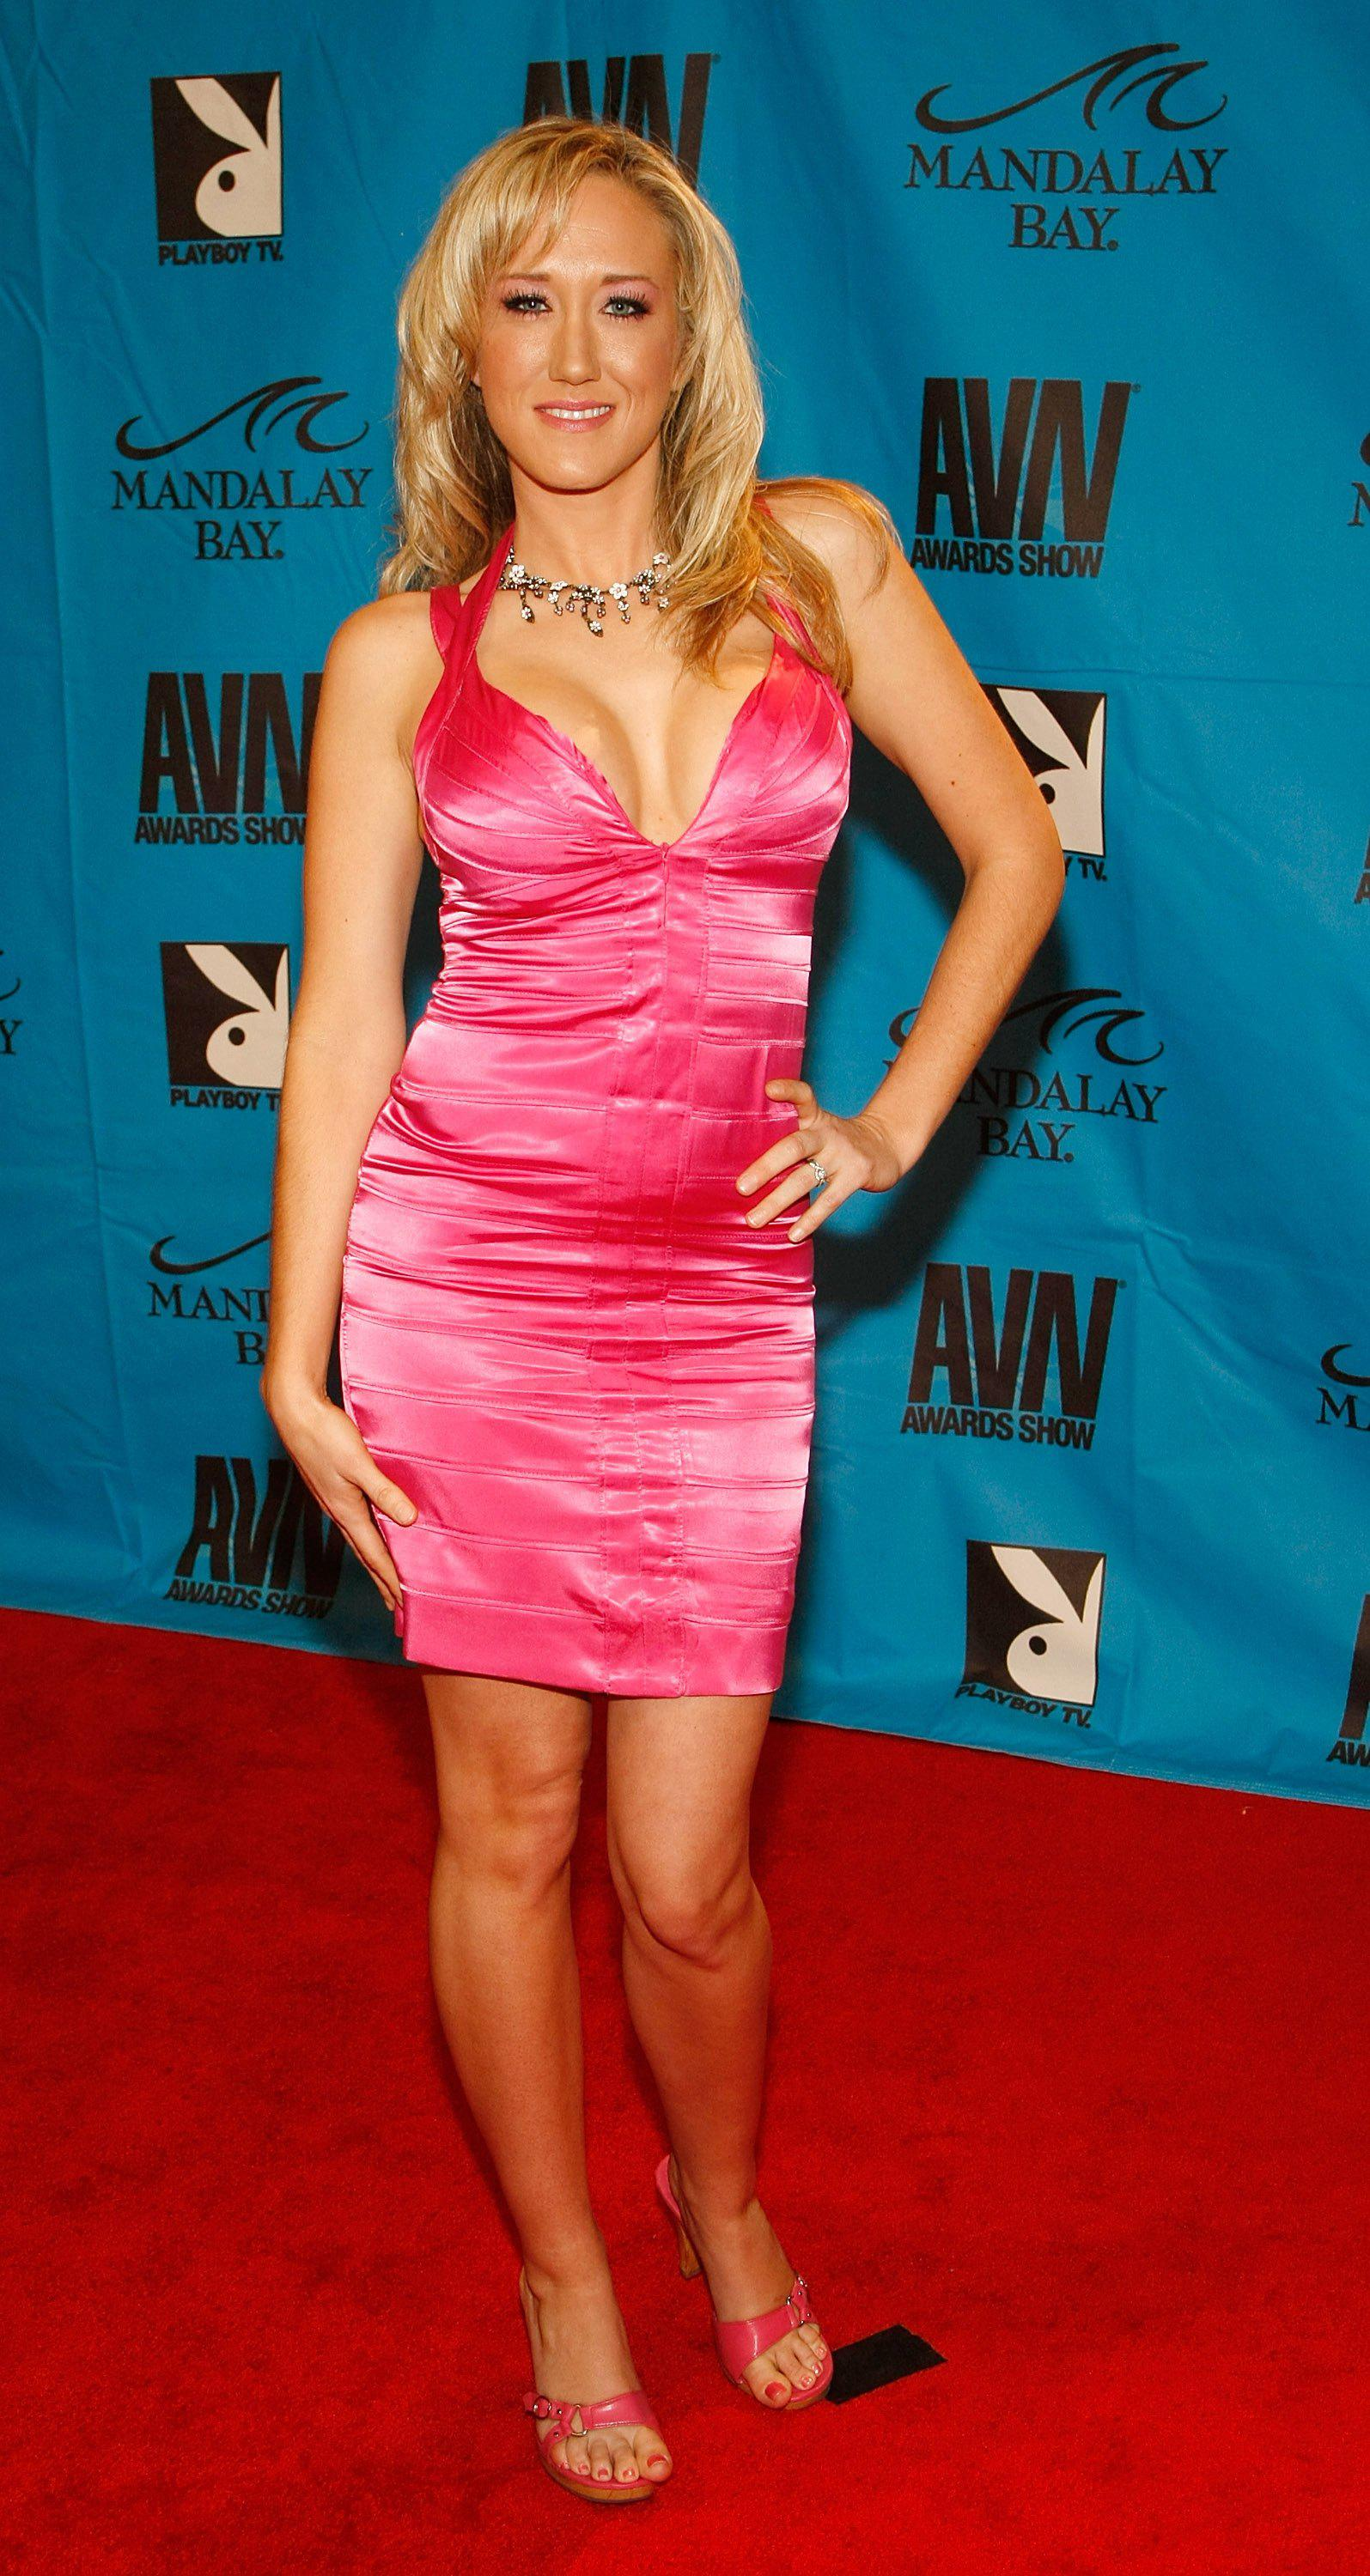 Adult film actress Alana Evans arrives at the 26th annual Adult Video News Awards Show at the Mandalay Bay Events Center January 10, 2009 in Las Vegas, Nevada.